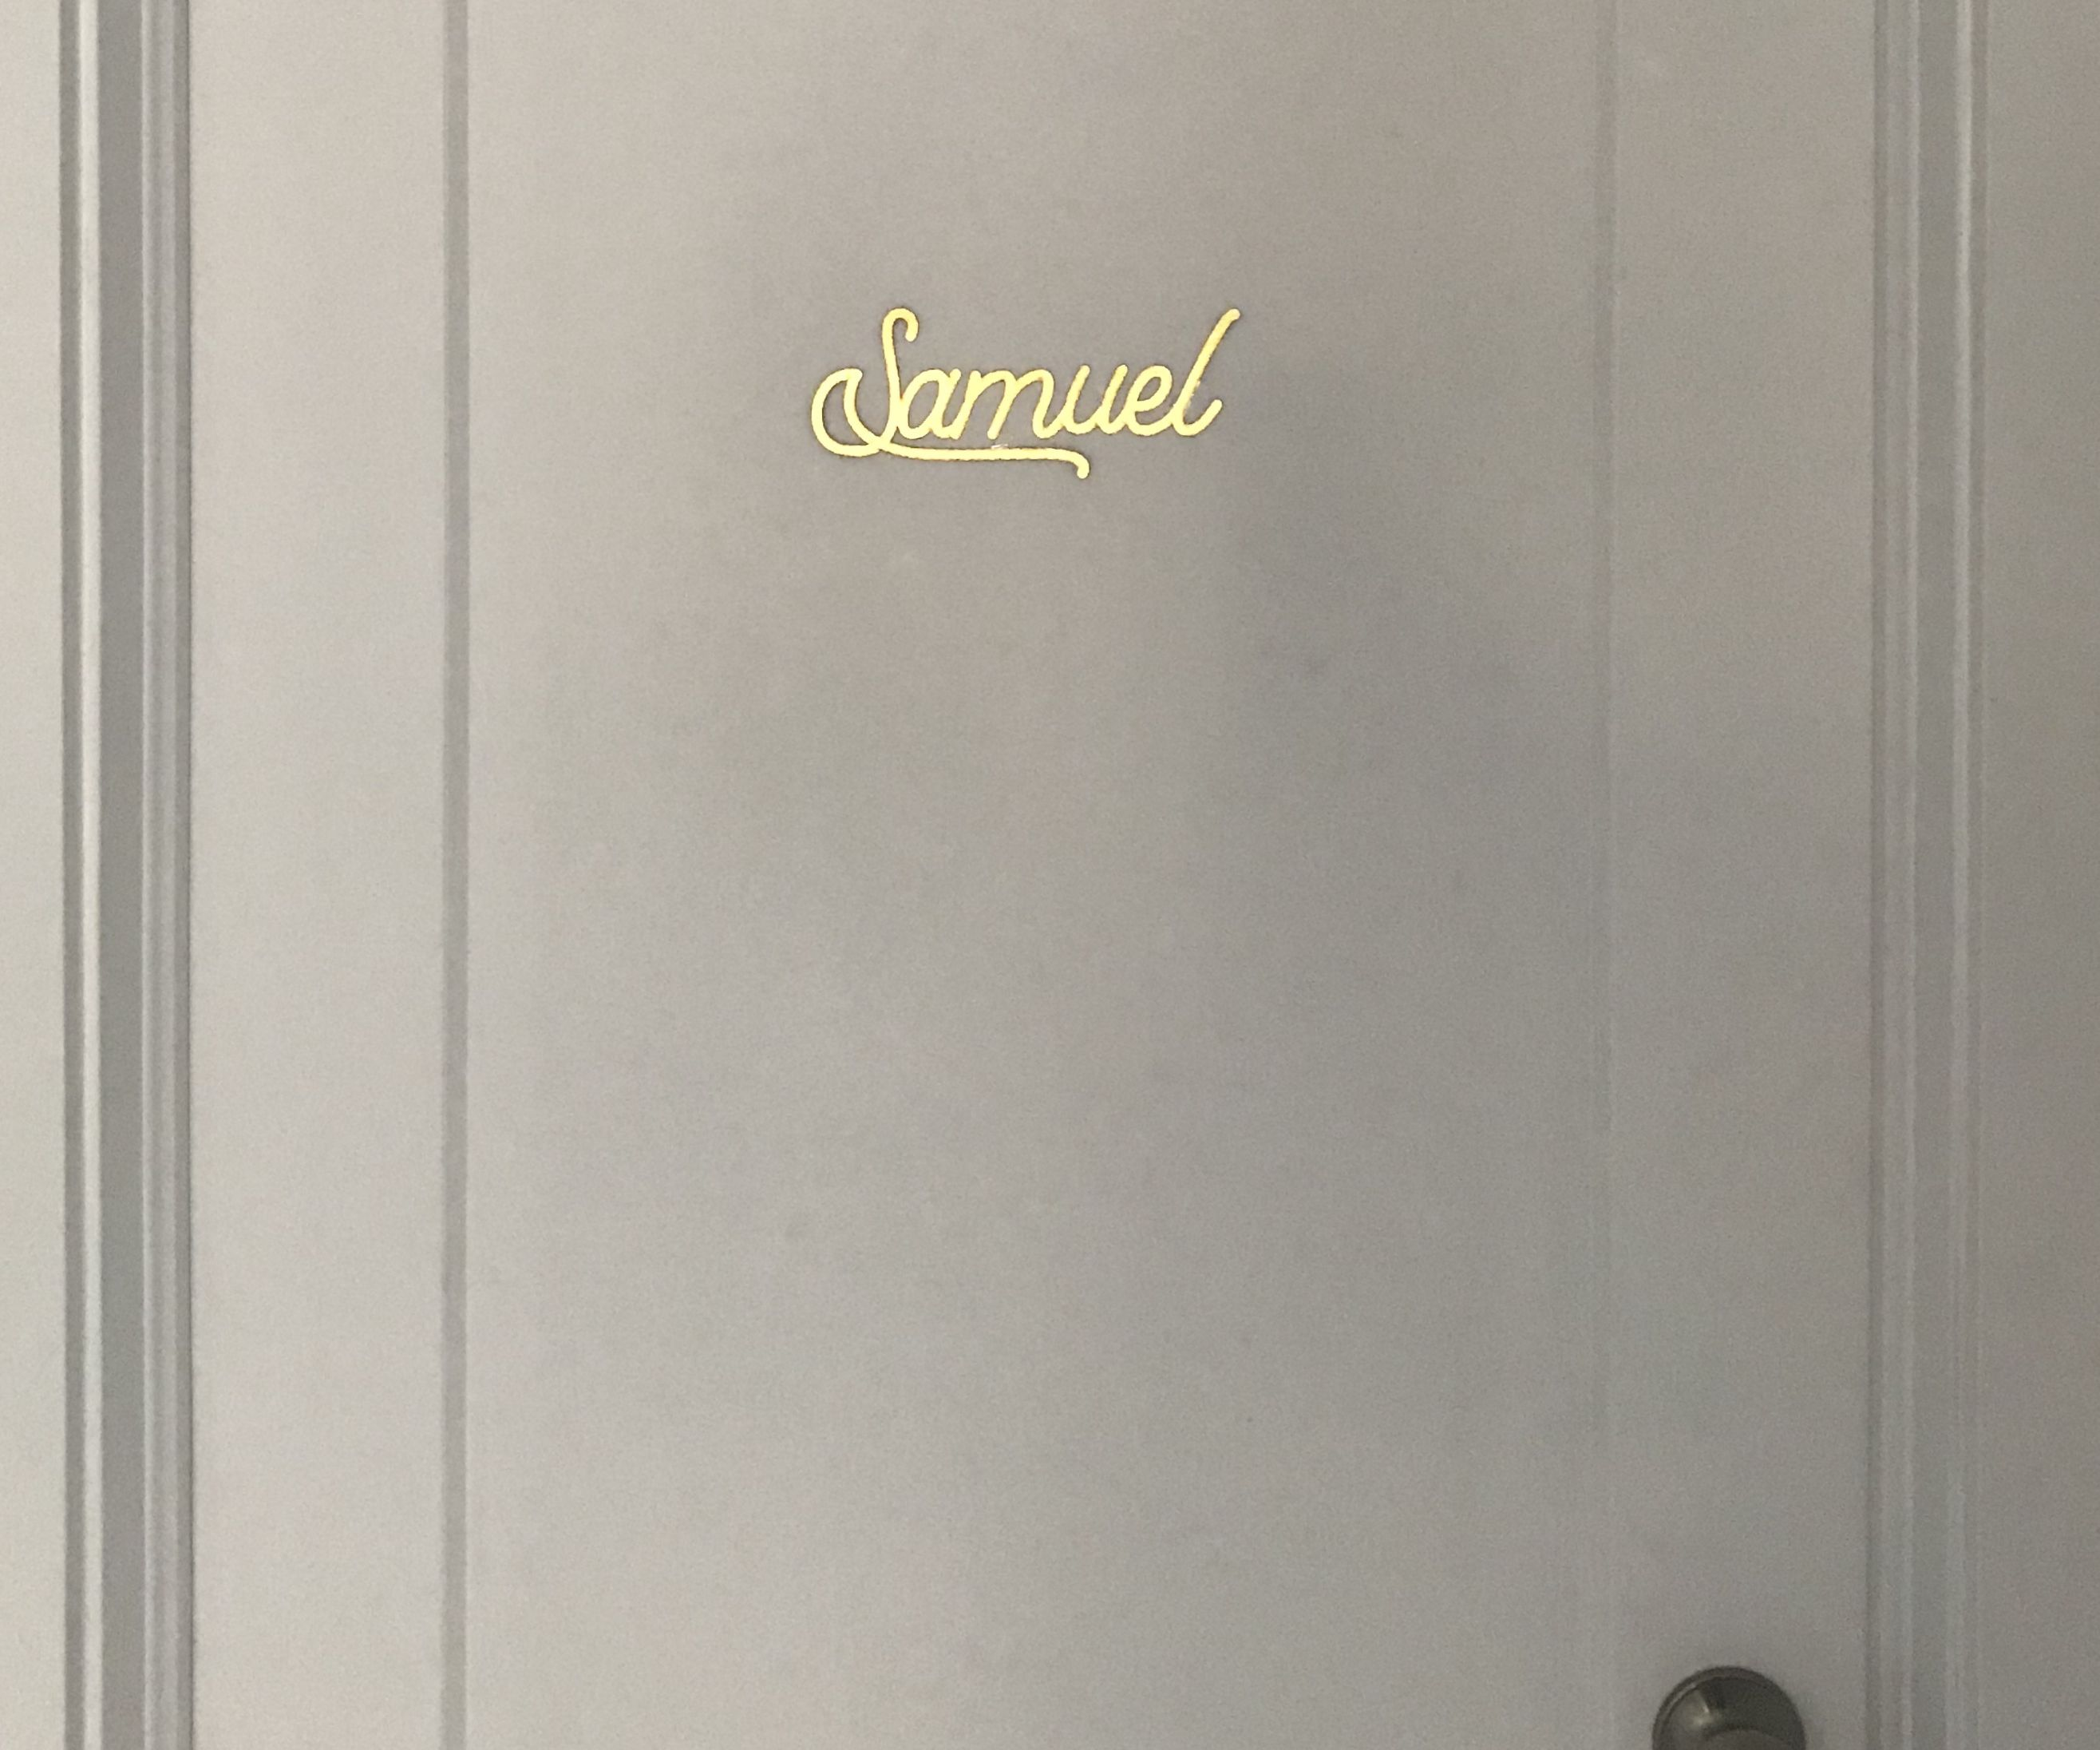 Recycled Paperboard Personalized Door Name